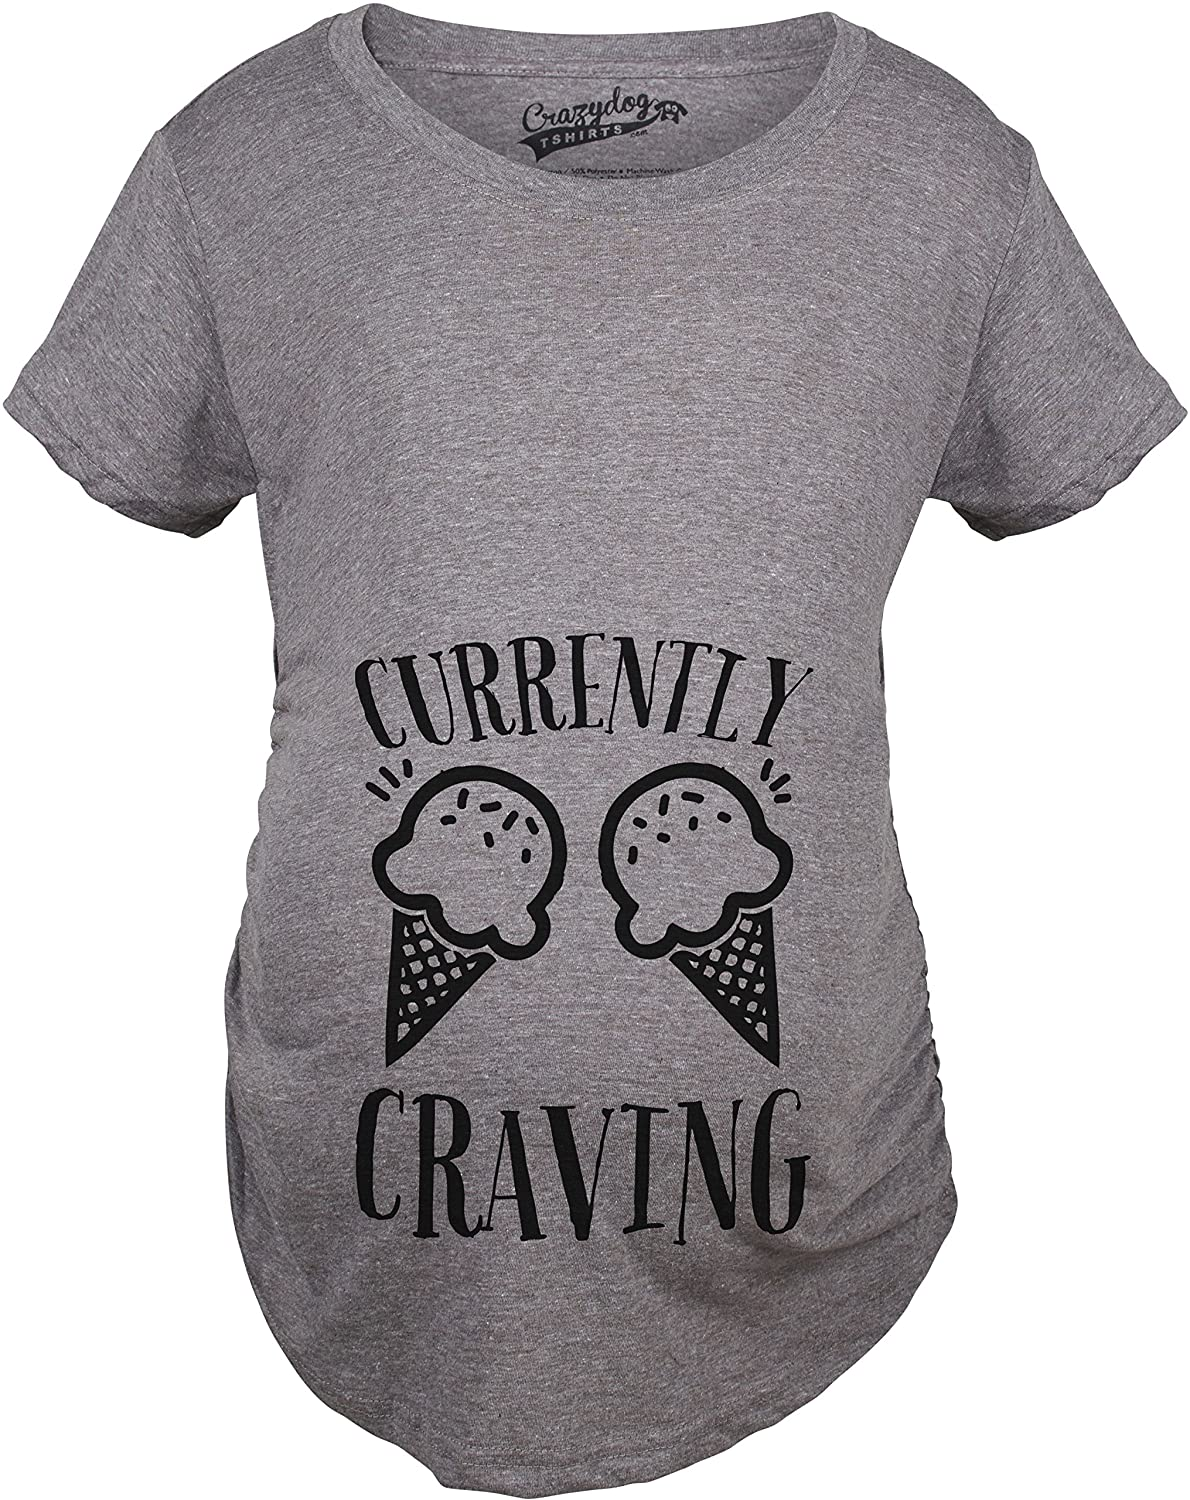 Maternity Currently Craving Ice Cream Funny Pregnancy Announcement T Shirt Crazy Dog Tshirts